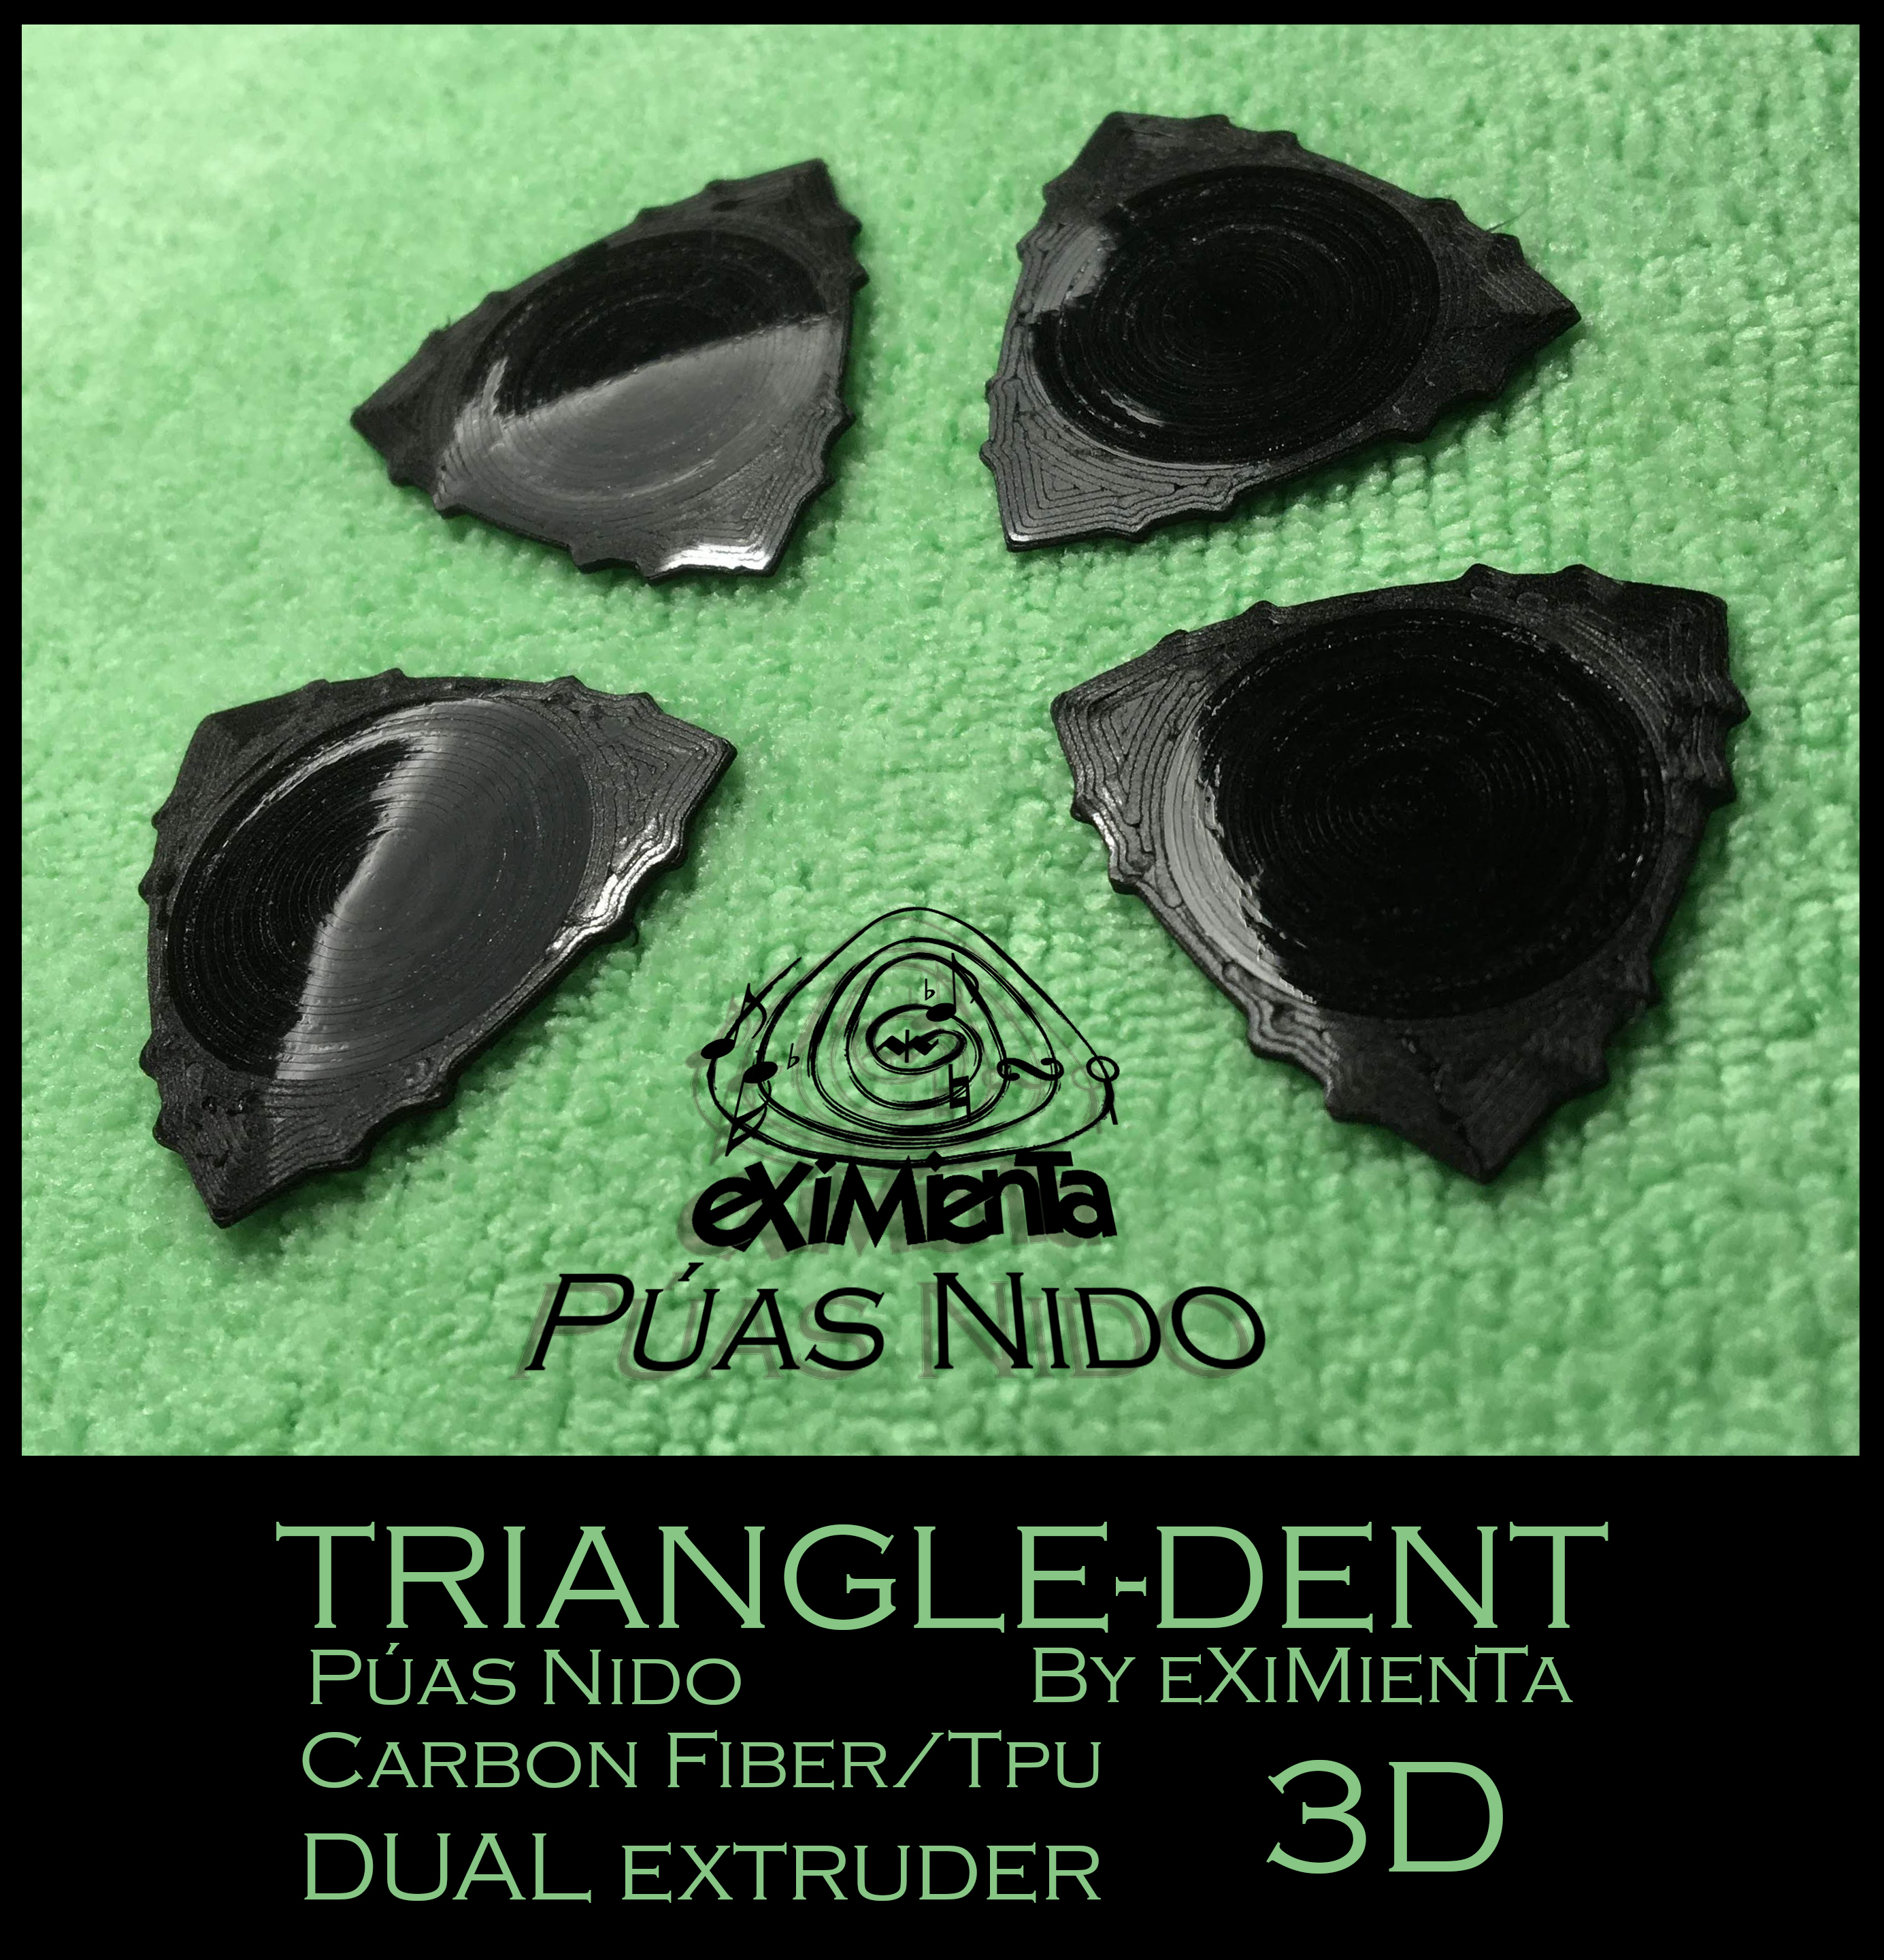 TRIANGLE -DENT Puas Nido Serie Dentadas 28042020 by eXiMienTa.jpg Download free STL file POLY-LACTIC ACID PLA TRIANGLE-DENT CARBON FIBER WITH TPU THERMOPLASTIC POLYURETHANE NON-SKID BAND • 3D printer design, carleslluisar